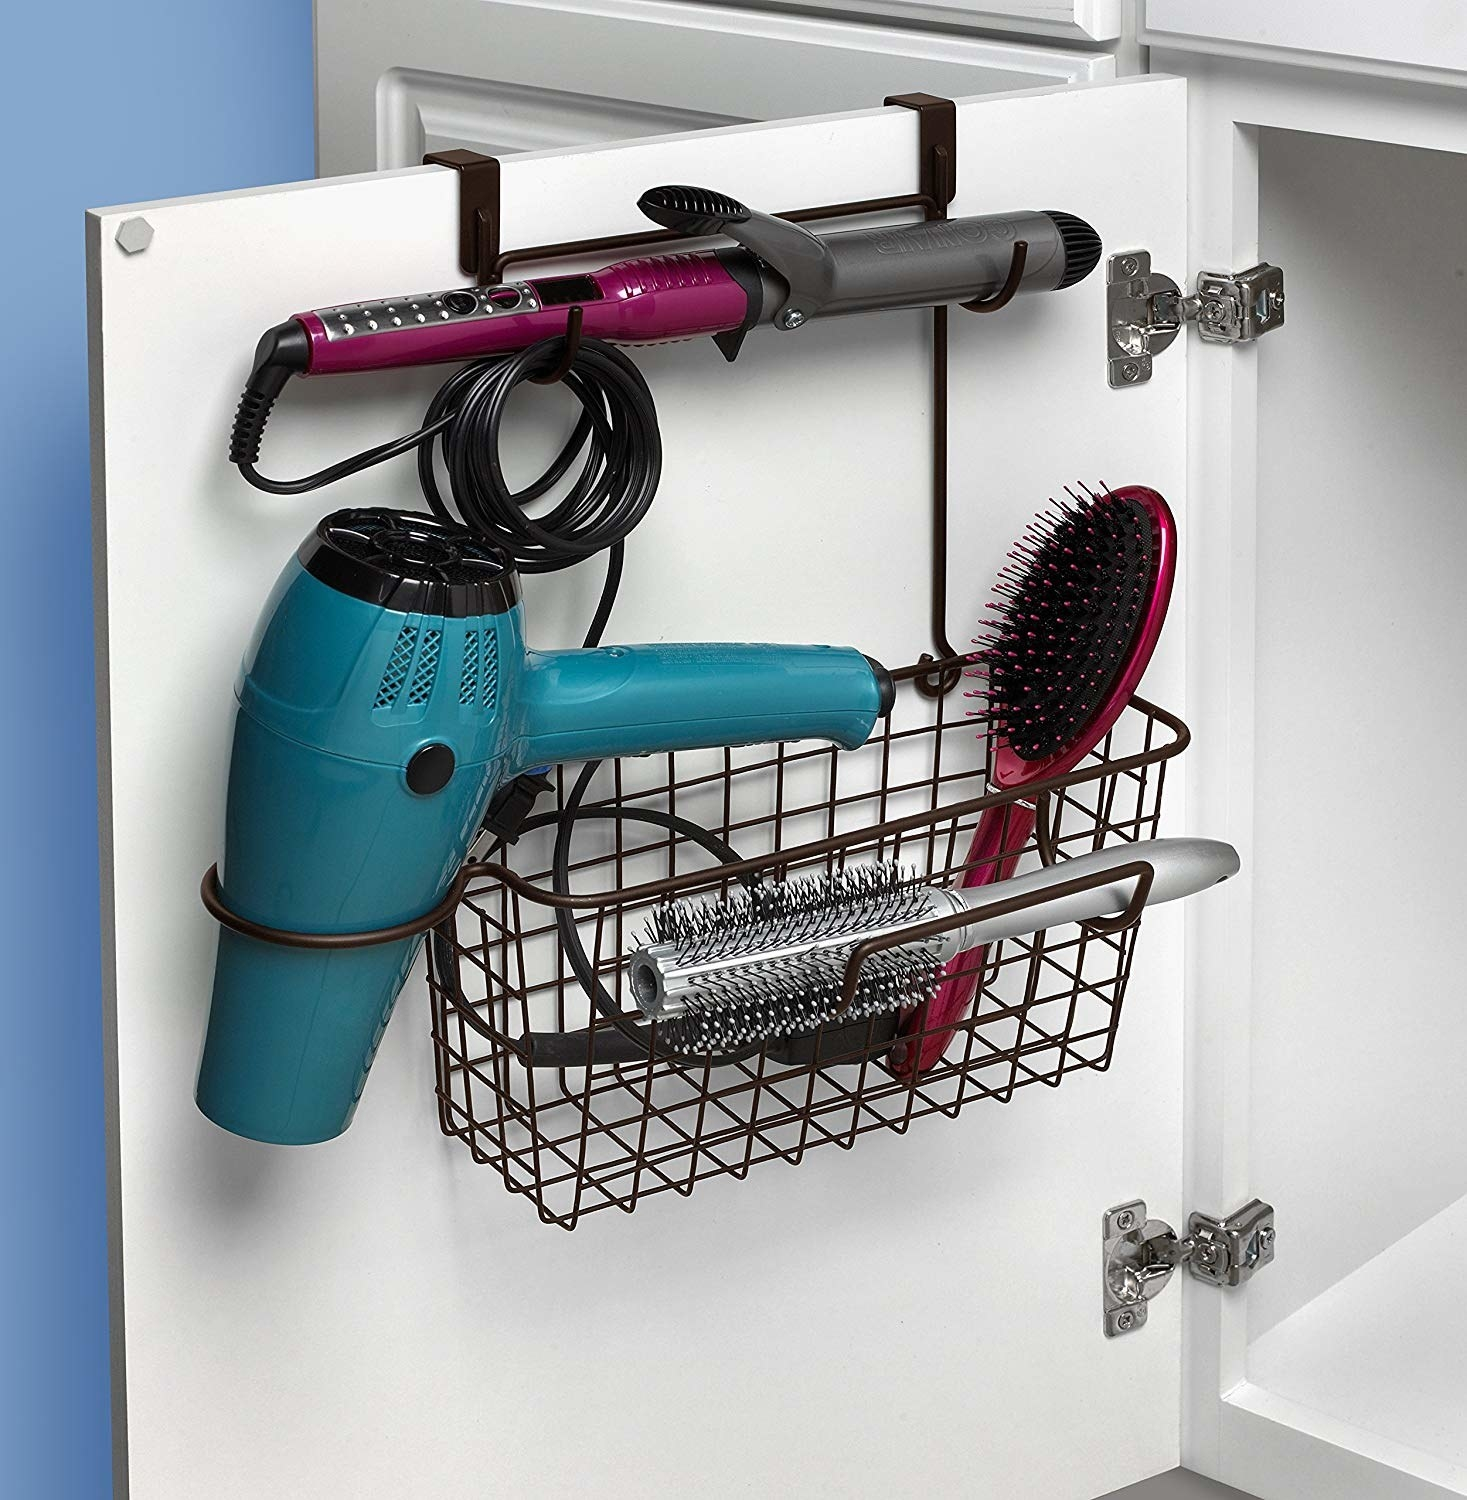 storage basket with hooks for a curling iron, a round slot for a hair dryer, and a loop for a round brush